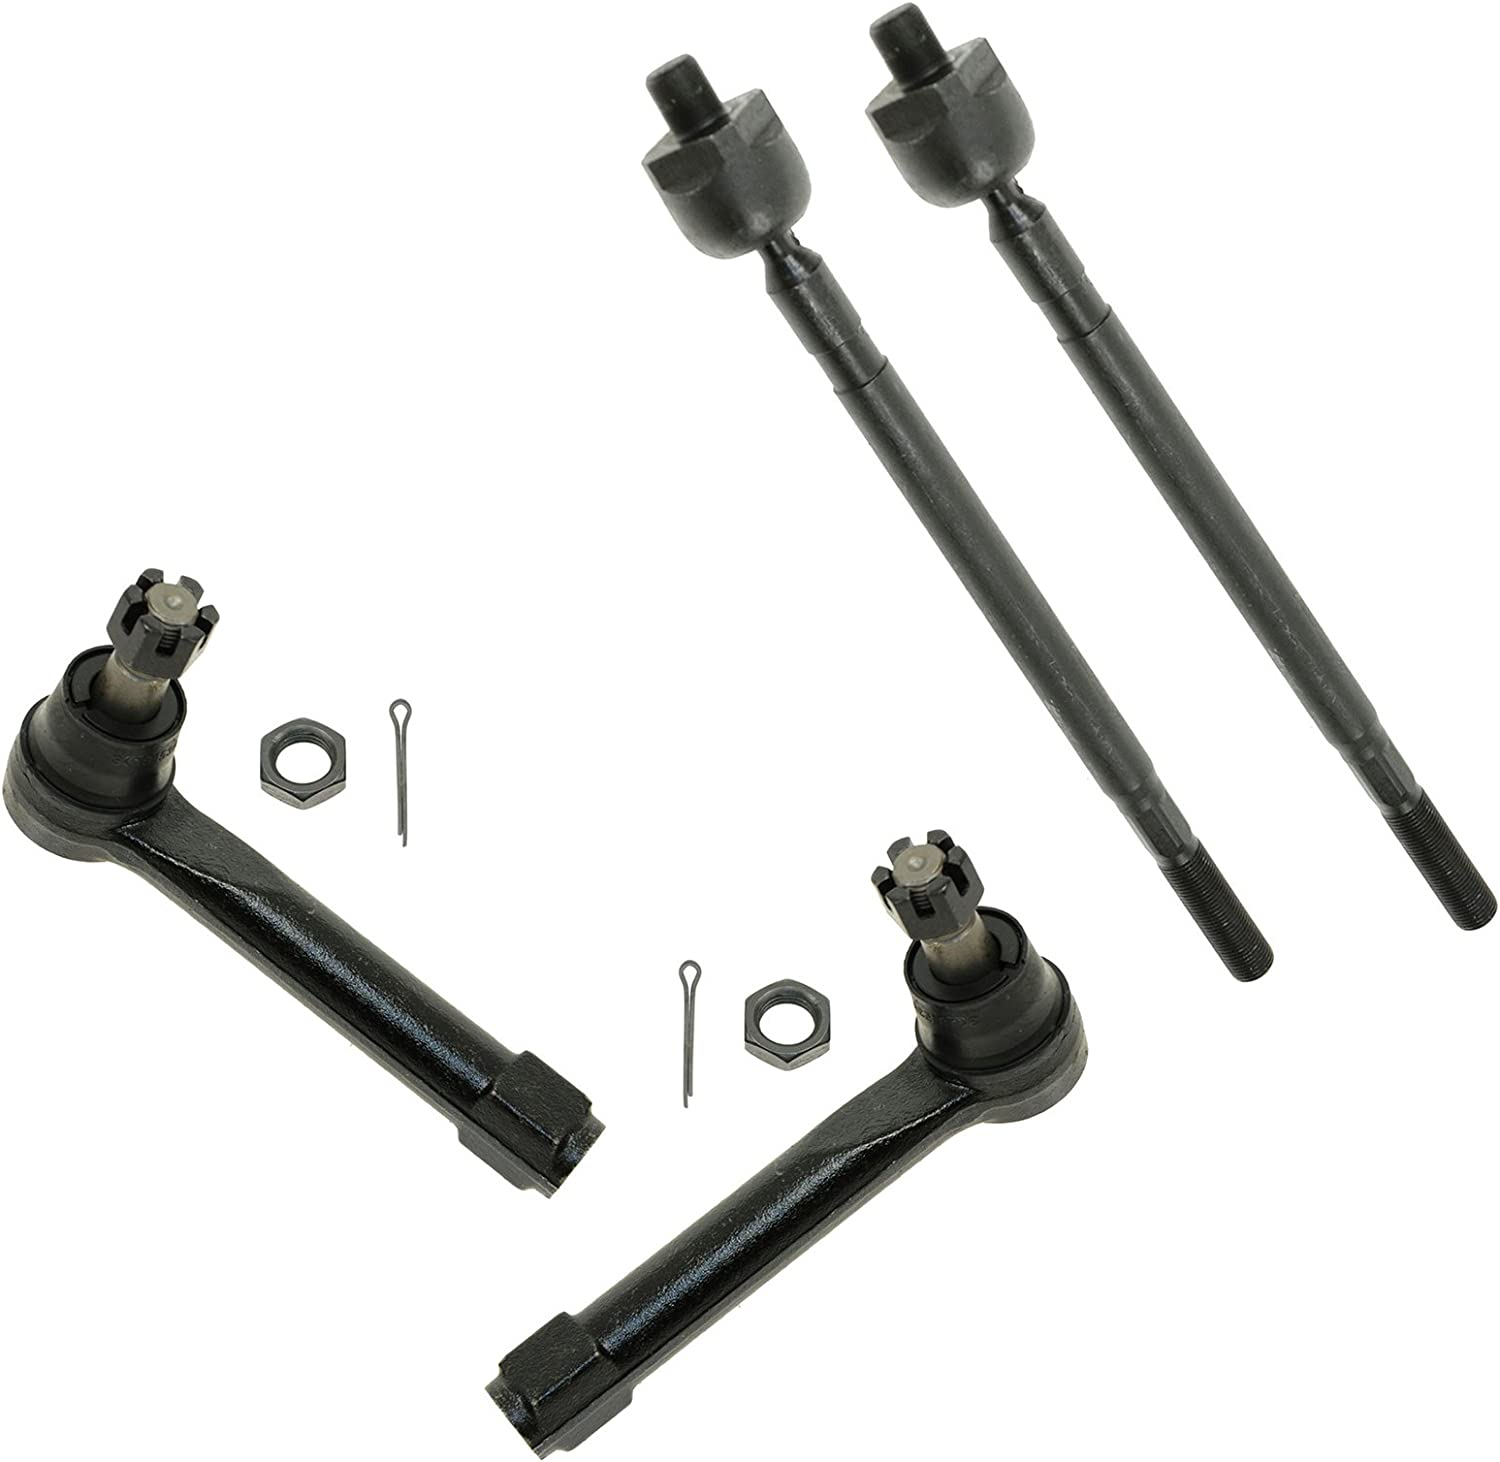 2006 Fits Audi A4 Front Outer Steering Tie Rod End With Five Years Warranty Package include One Tie Rod End Only